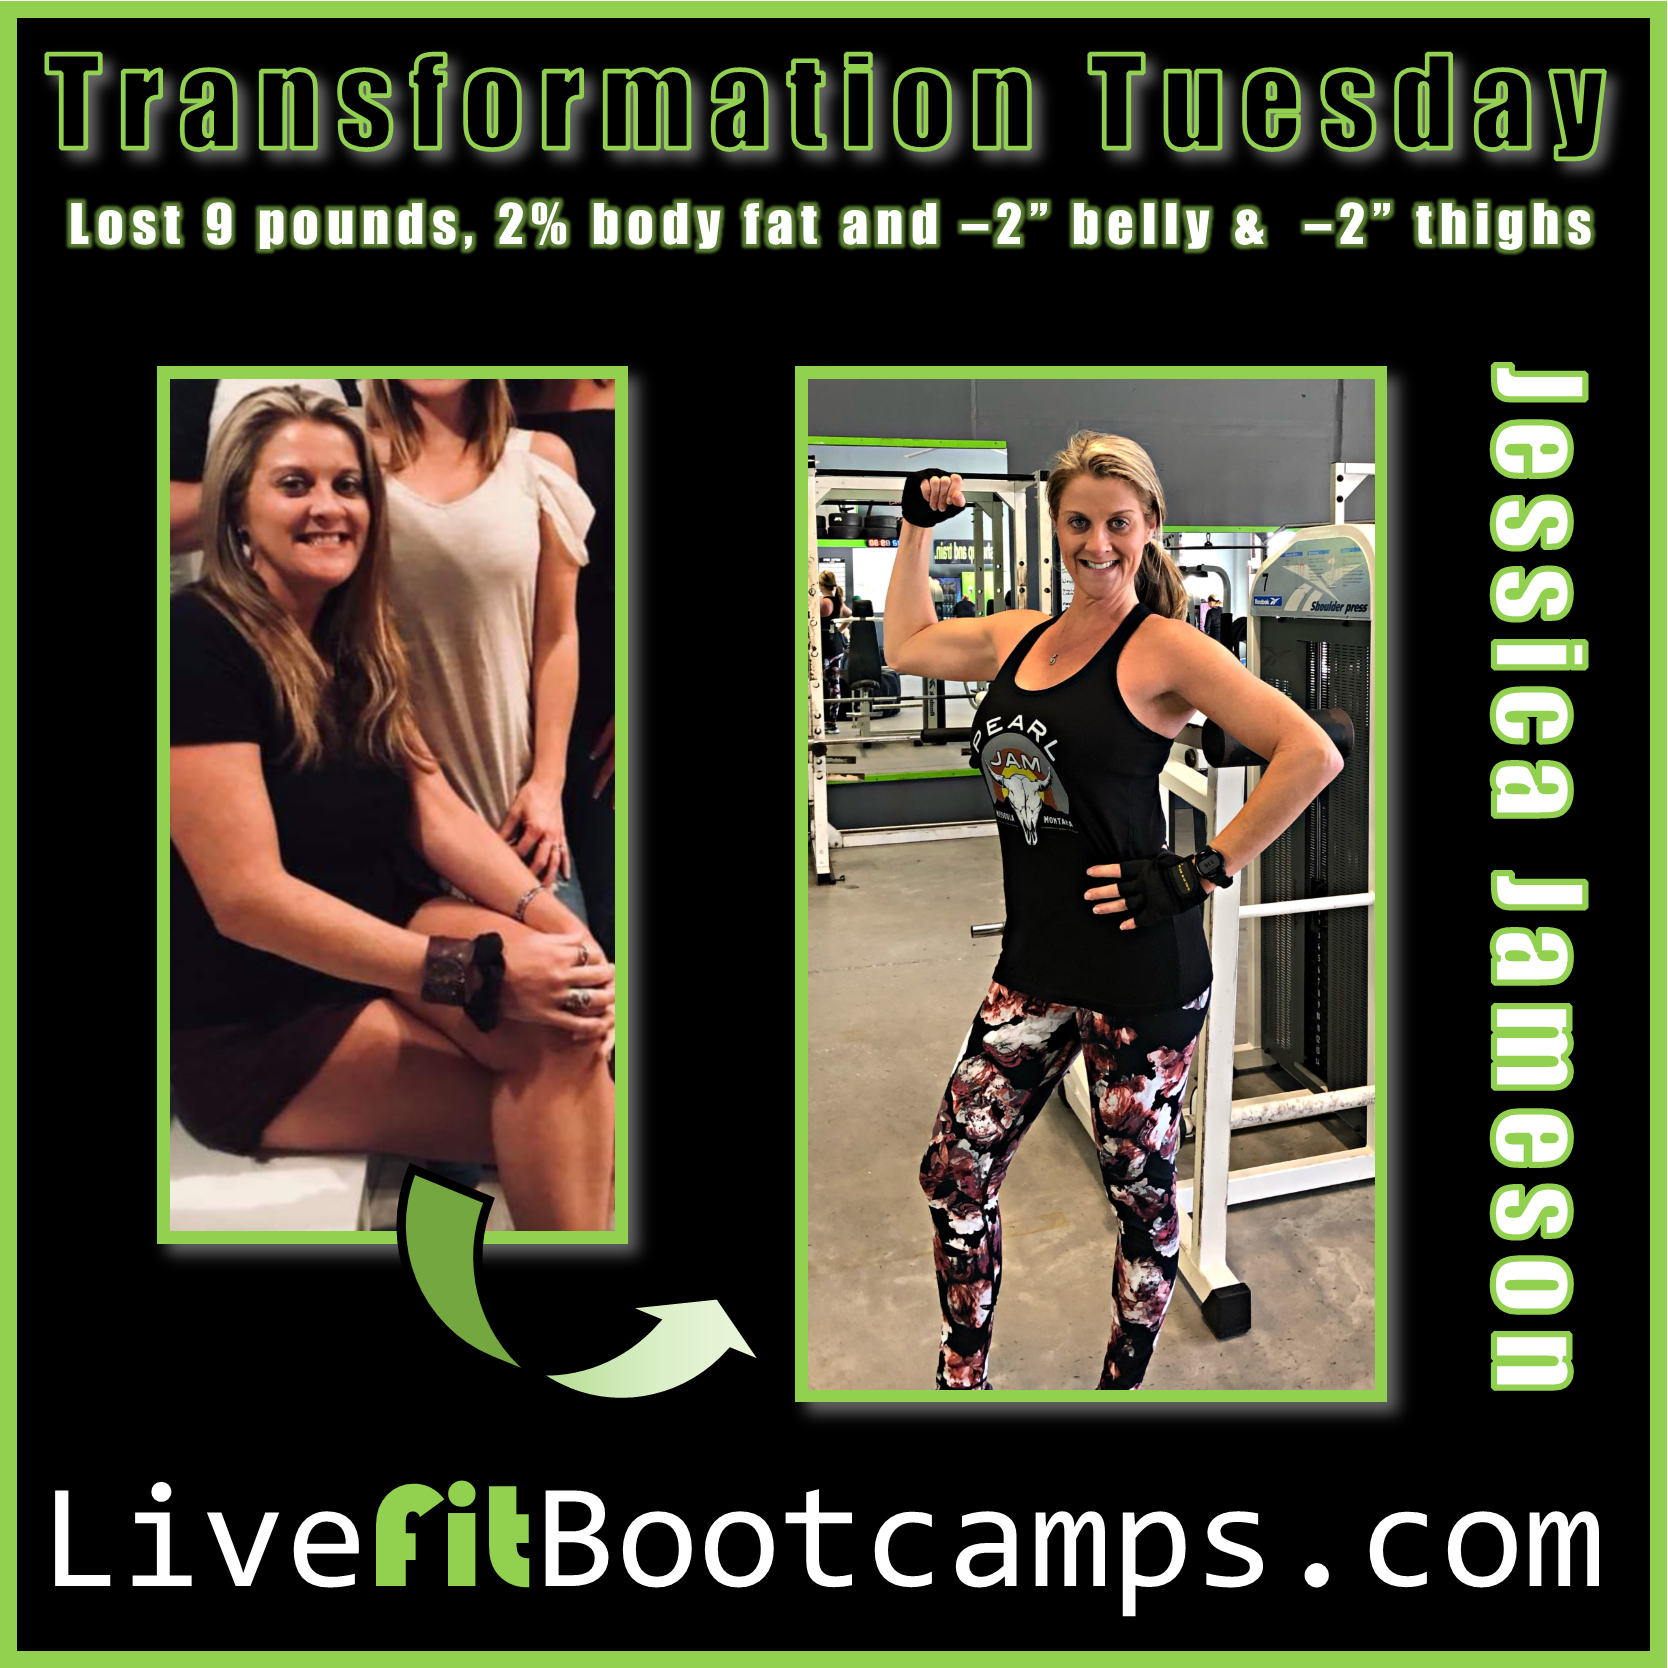 Jessica transformation tuesday live fit boot camp